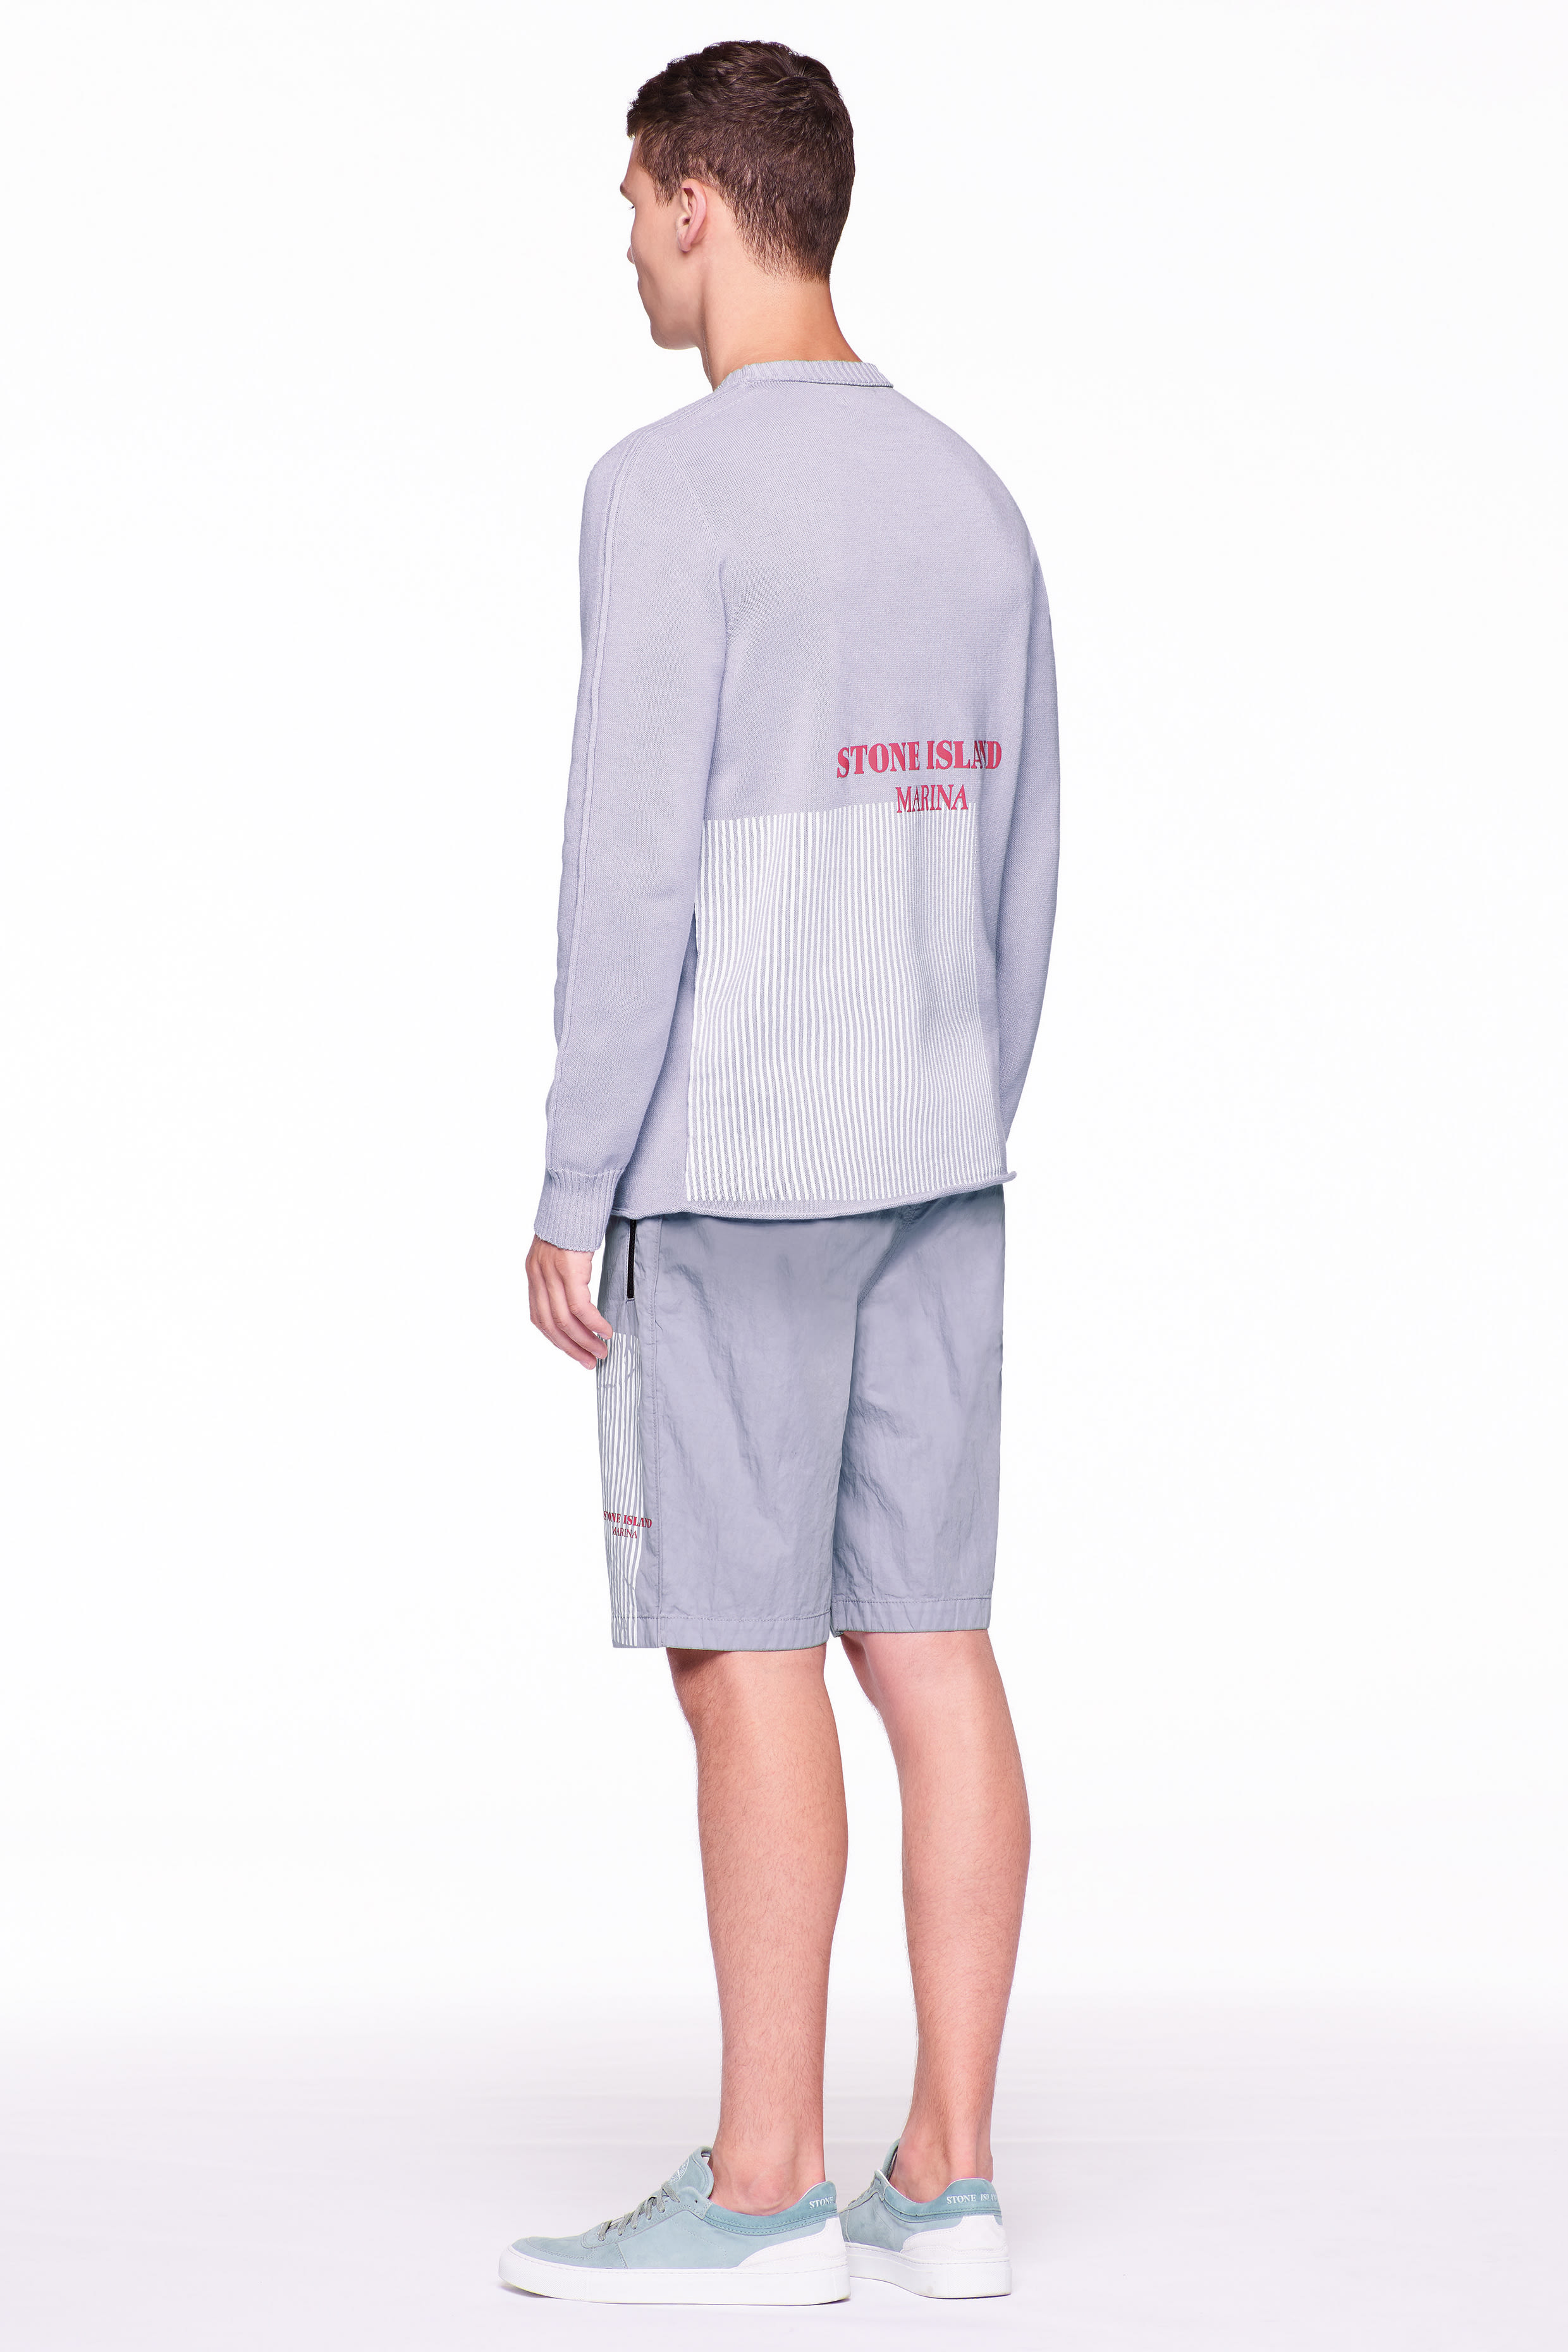 ss18-si10